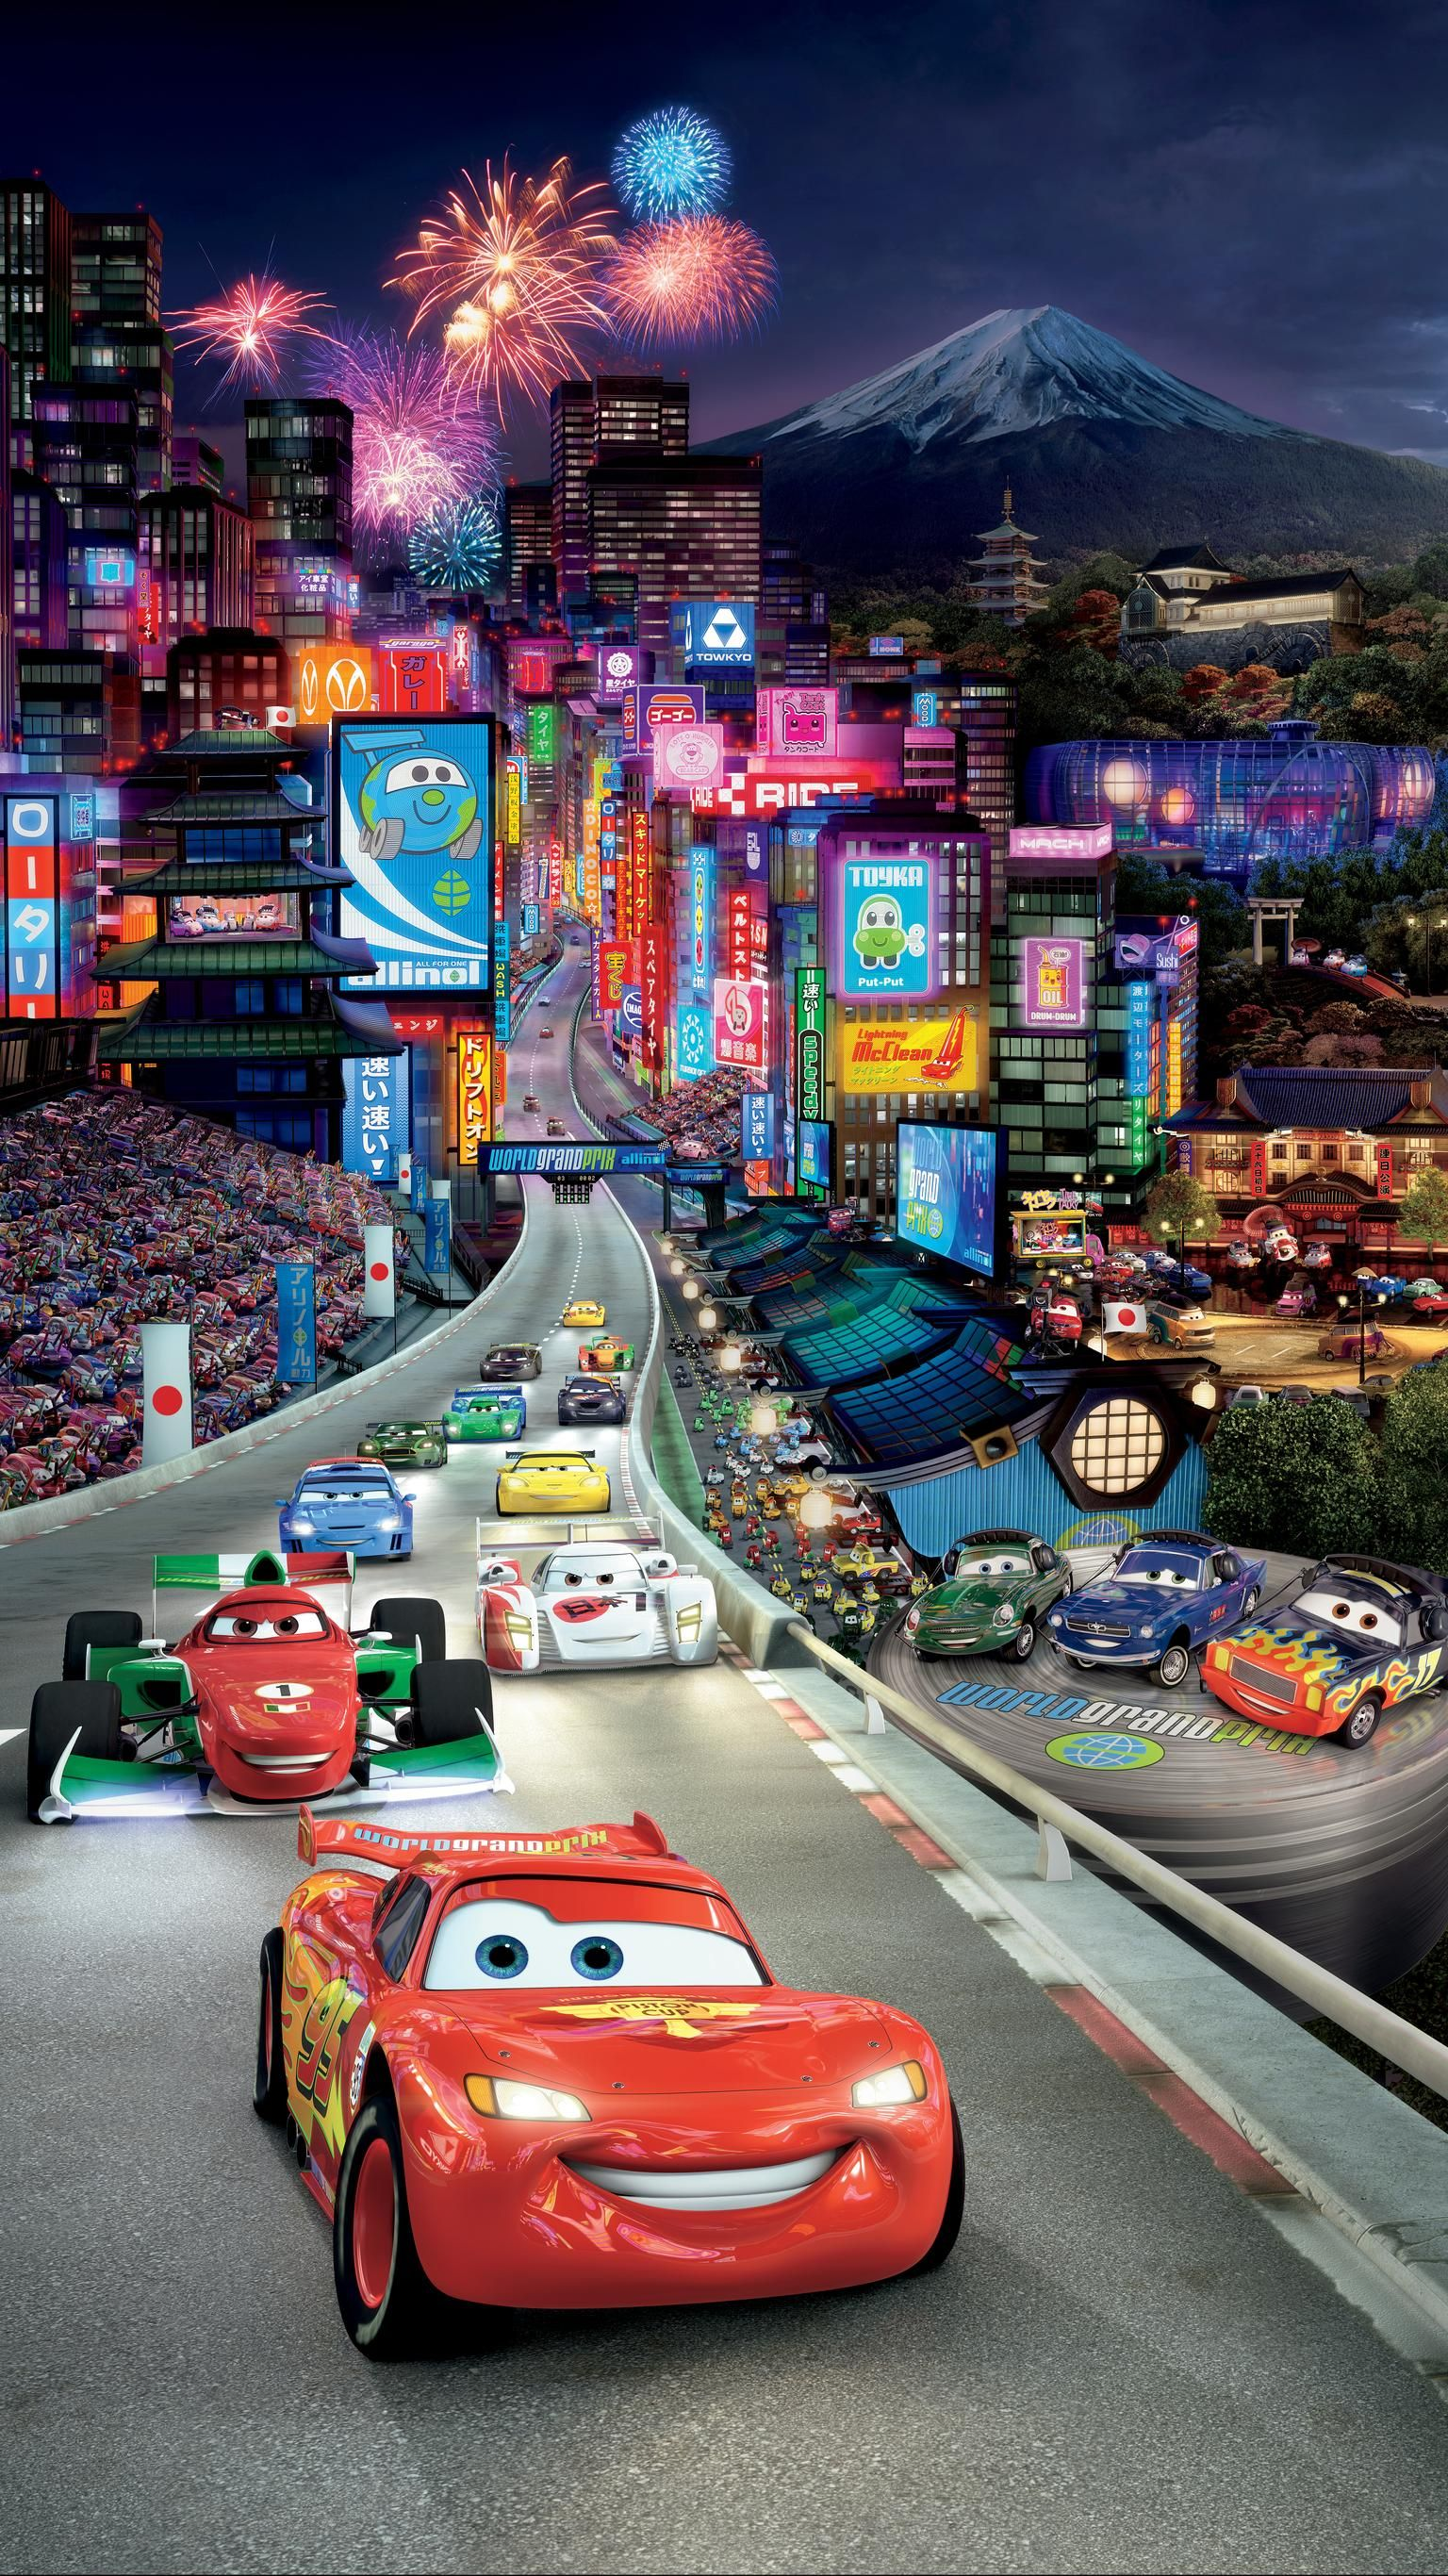 Cars 2 2011 Phone Wallpaper Carros Da Disney Aniversario Carros Carros